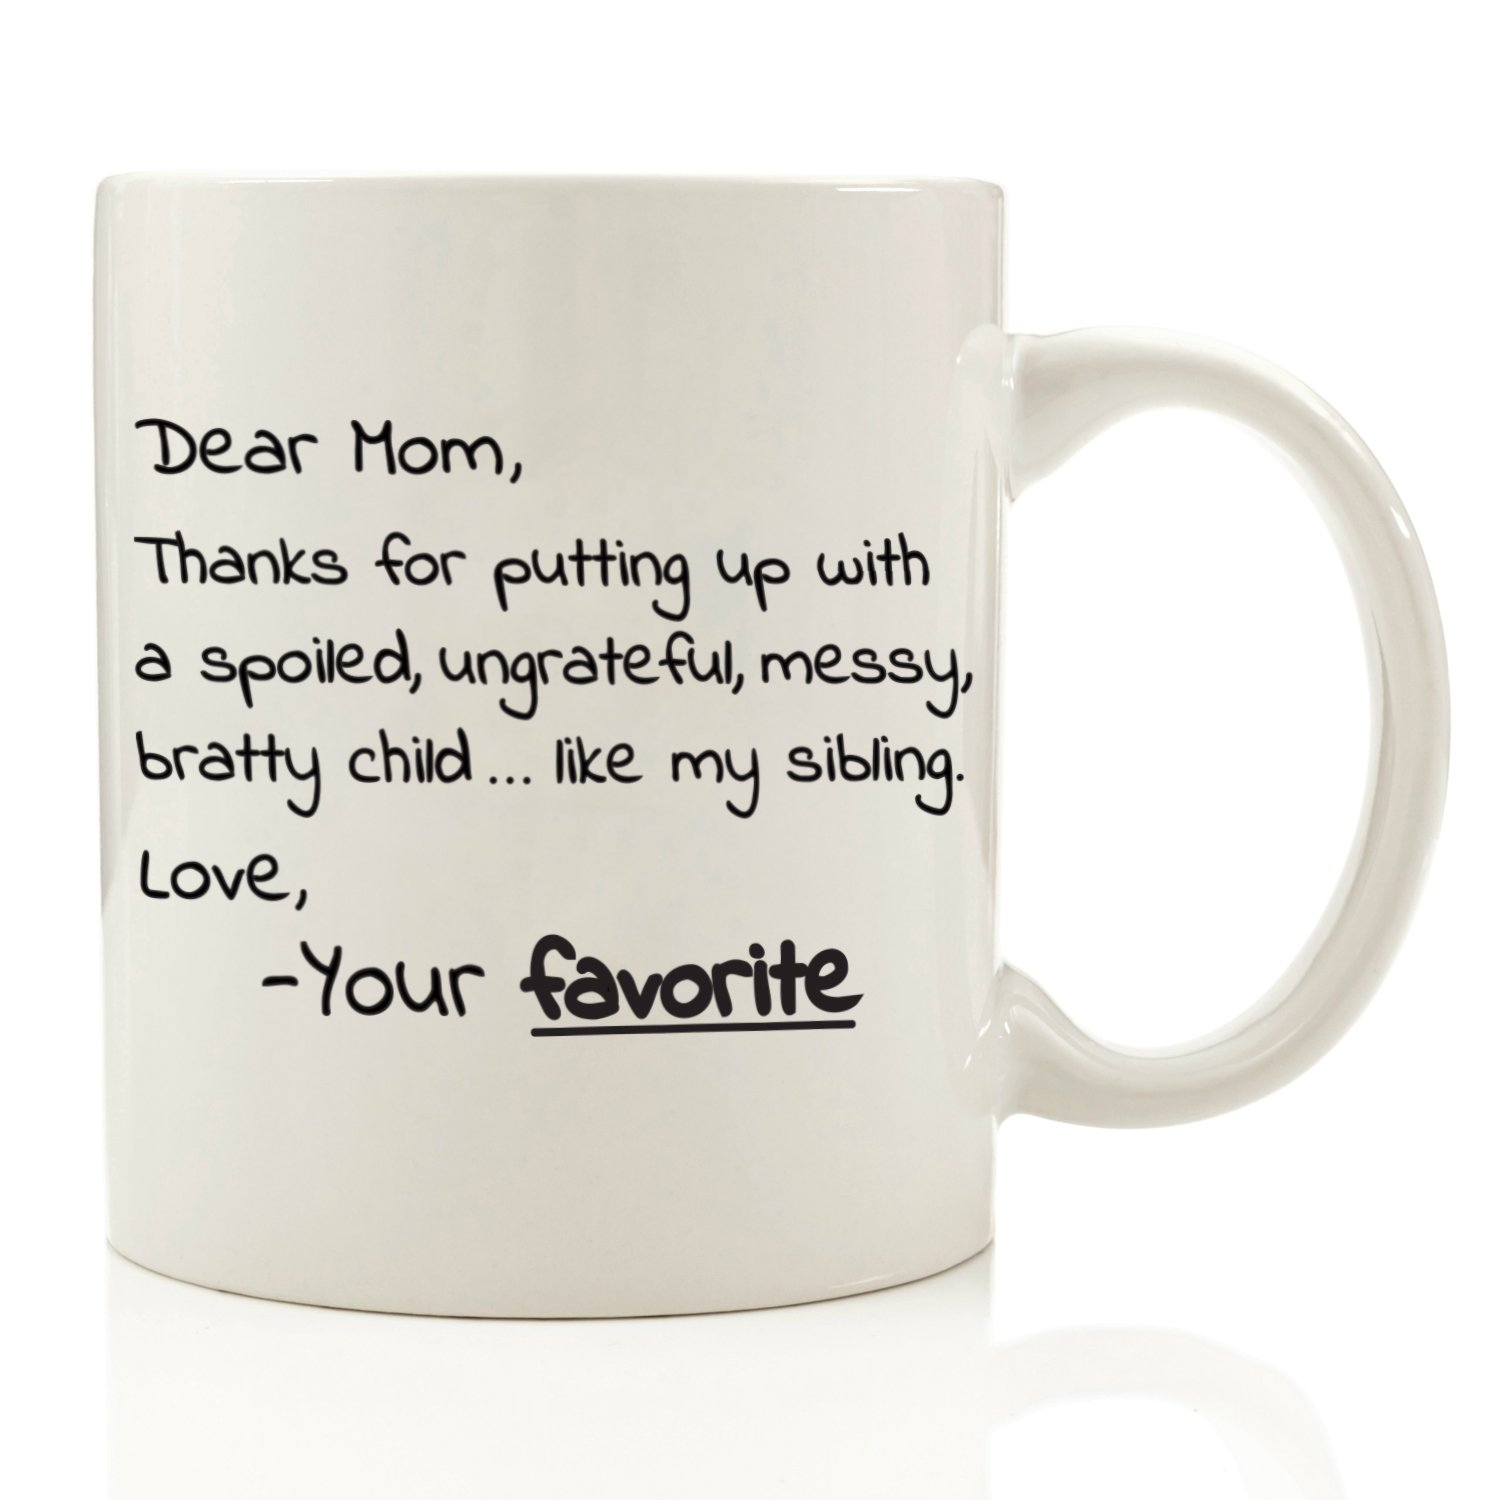 Dear Mom From Your Favorite - Funny Coffee Mug 11 oz - Top Christmas Gifts  sc 1 st  Amazon.com & Good Christmas Gifts For Moms: Amazon.com